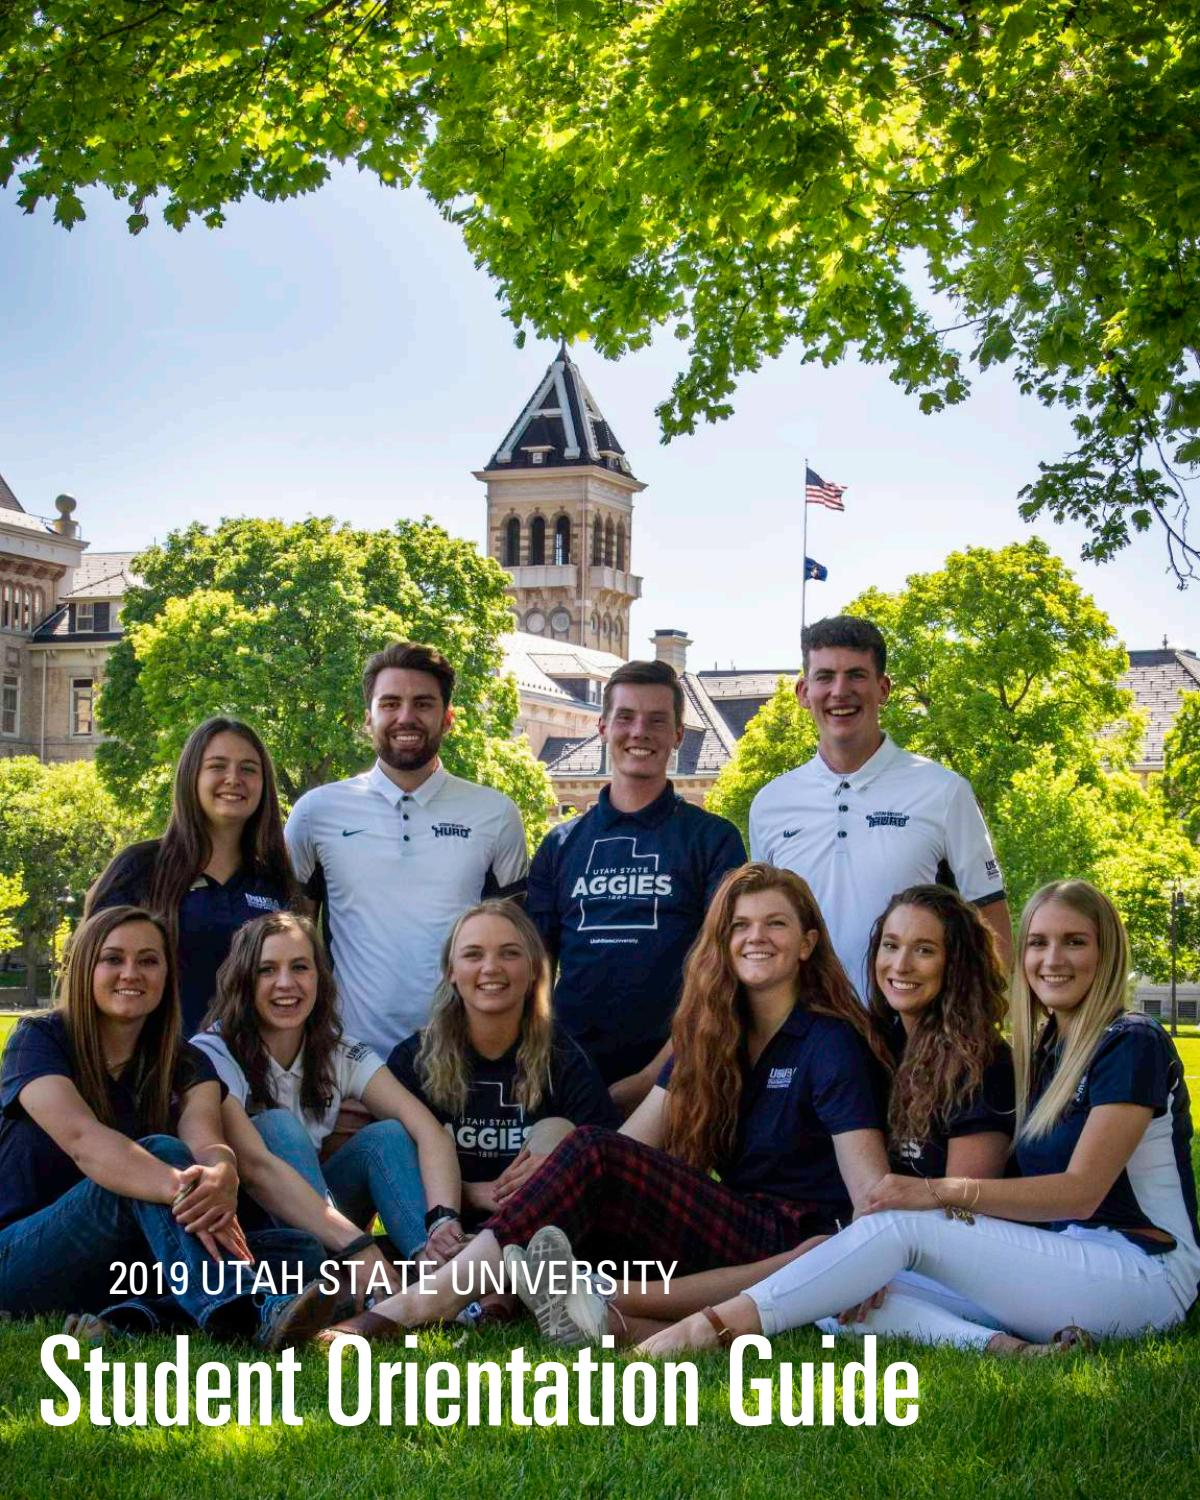 Utah State University Spring Break 2020.Utah State University Orientation Guide 2019 By Usu Digital